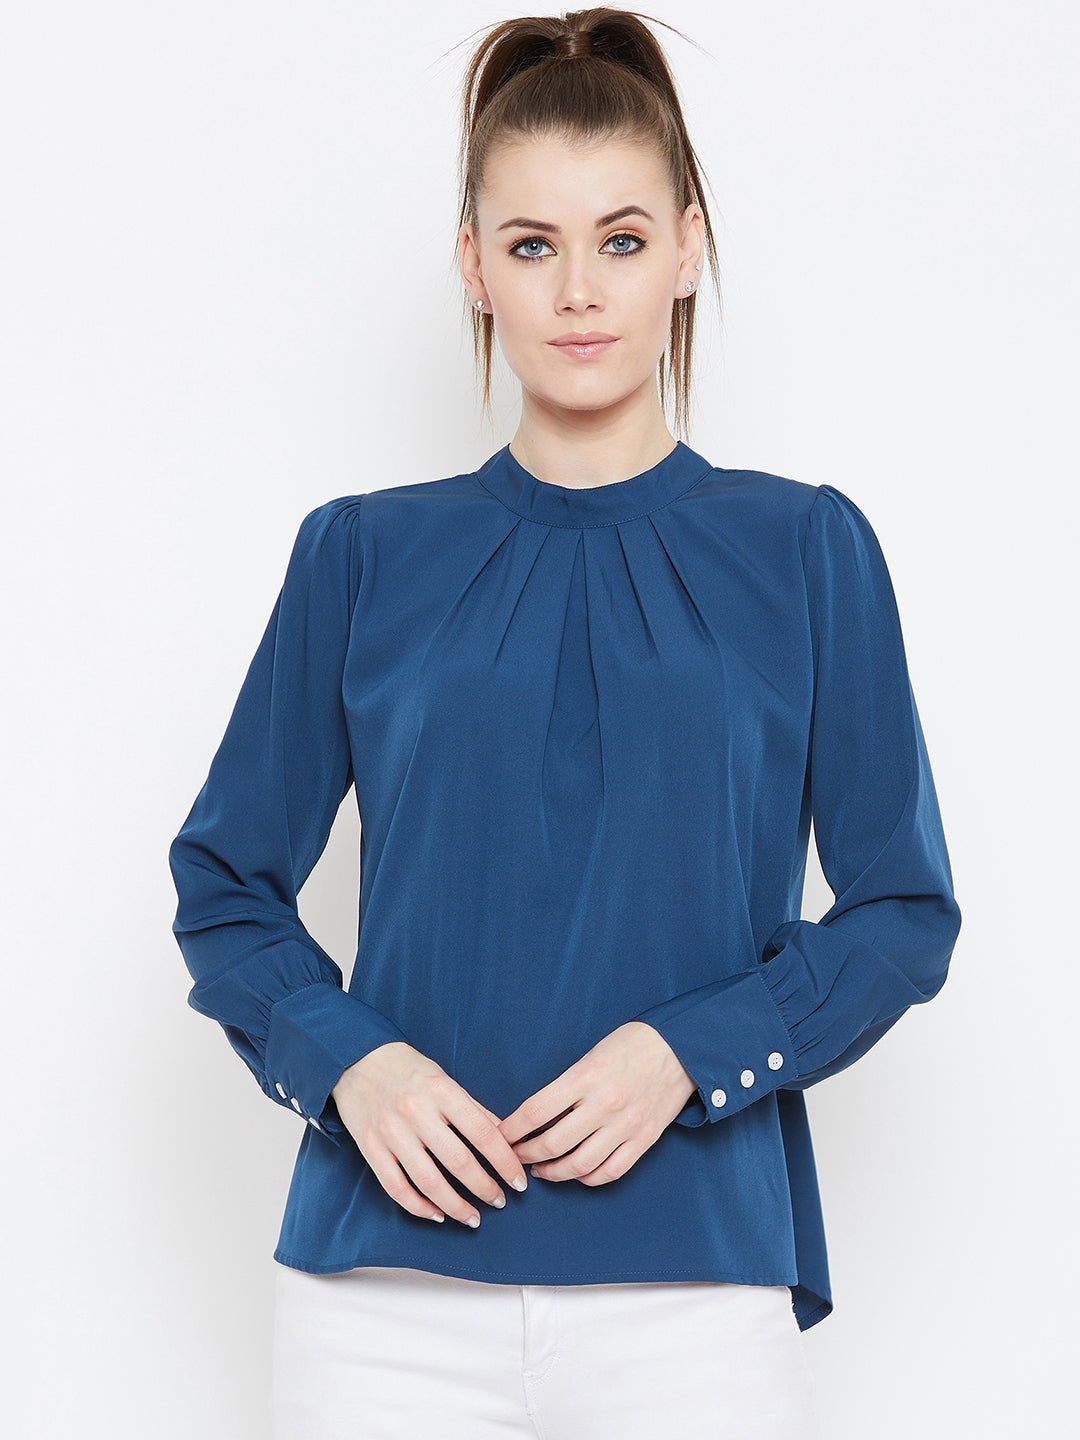 Berrylush Blue Gathered Neck Stand Collar Top for Women